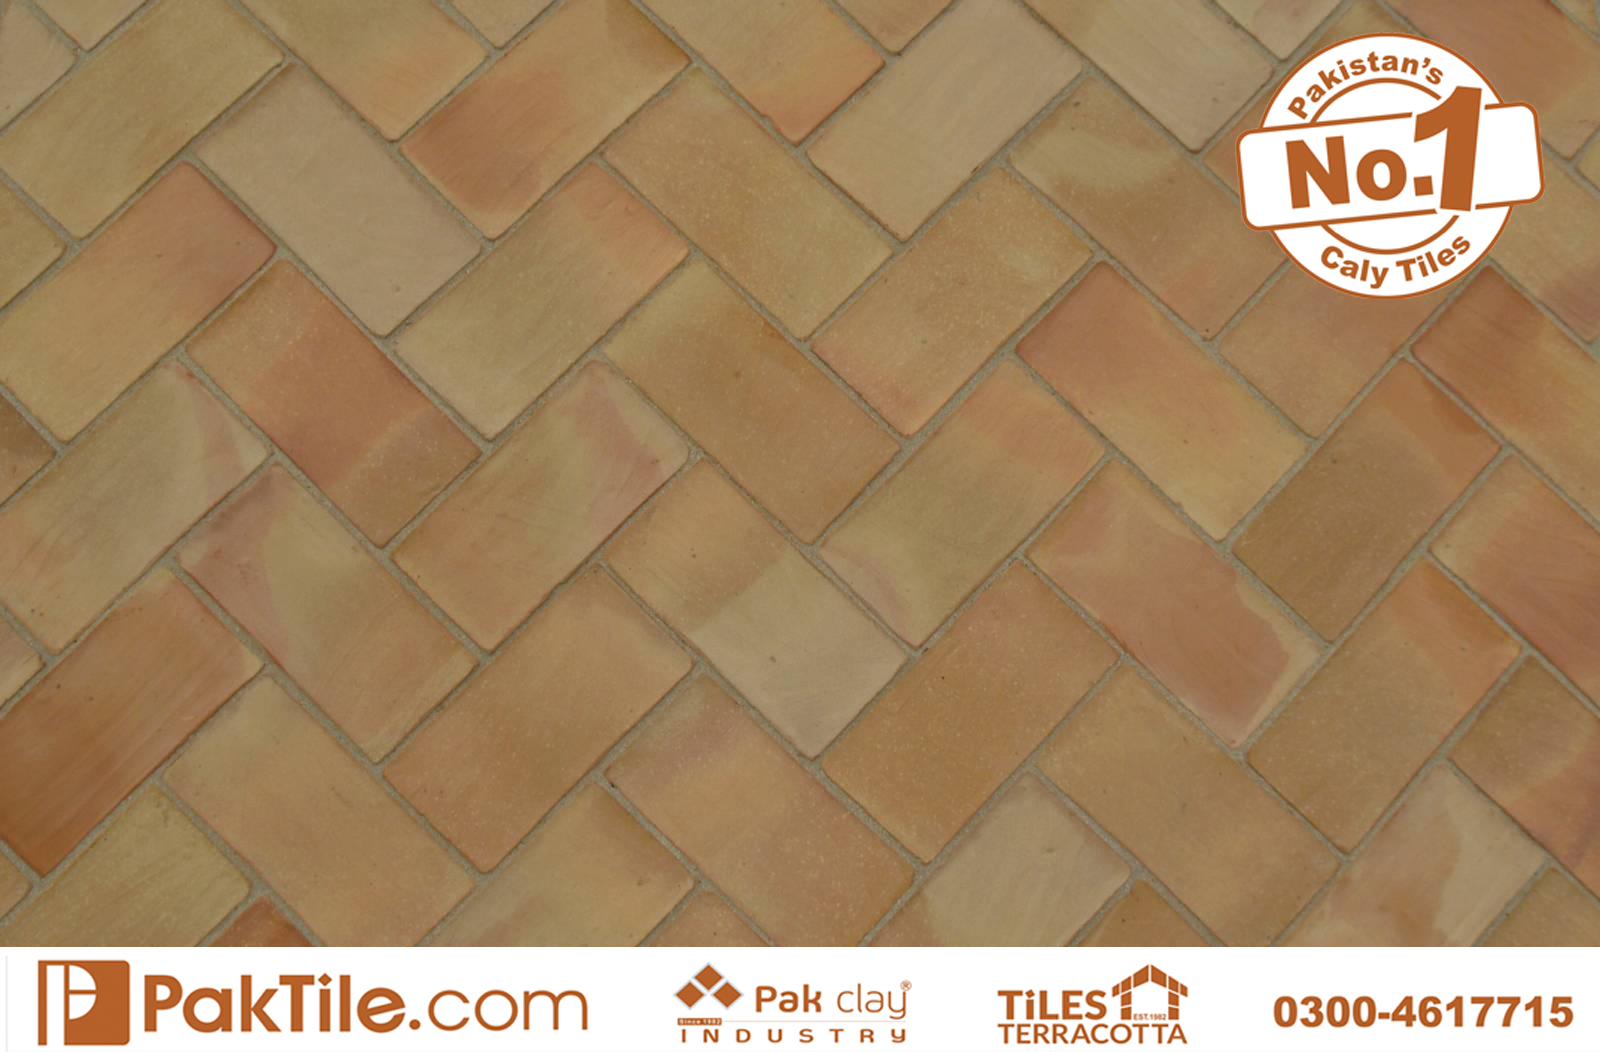 Pak Clay Industry Natural Handcraft Red Mud Clay Tiles Patterns Pakistan Images My Shop Available Images